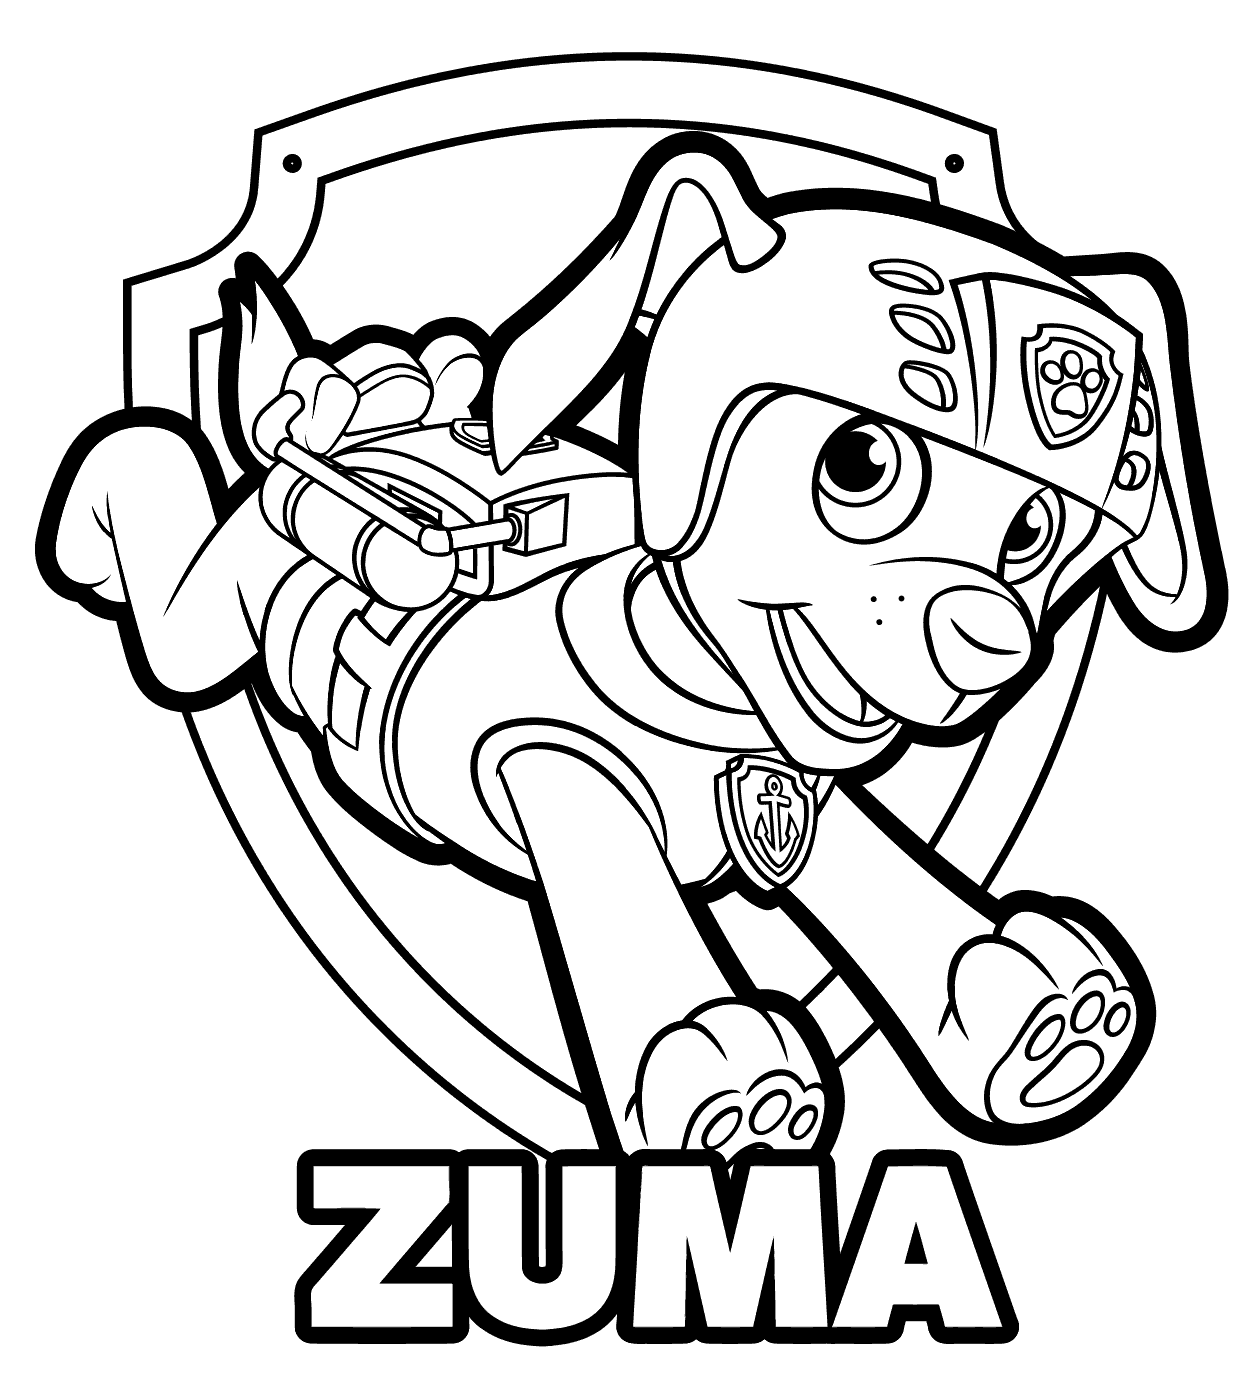 Coloring Rocks Paw Patrol Coloring Pages Paw Patrol Coloring Paw Patrol Christmas